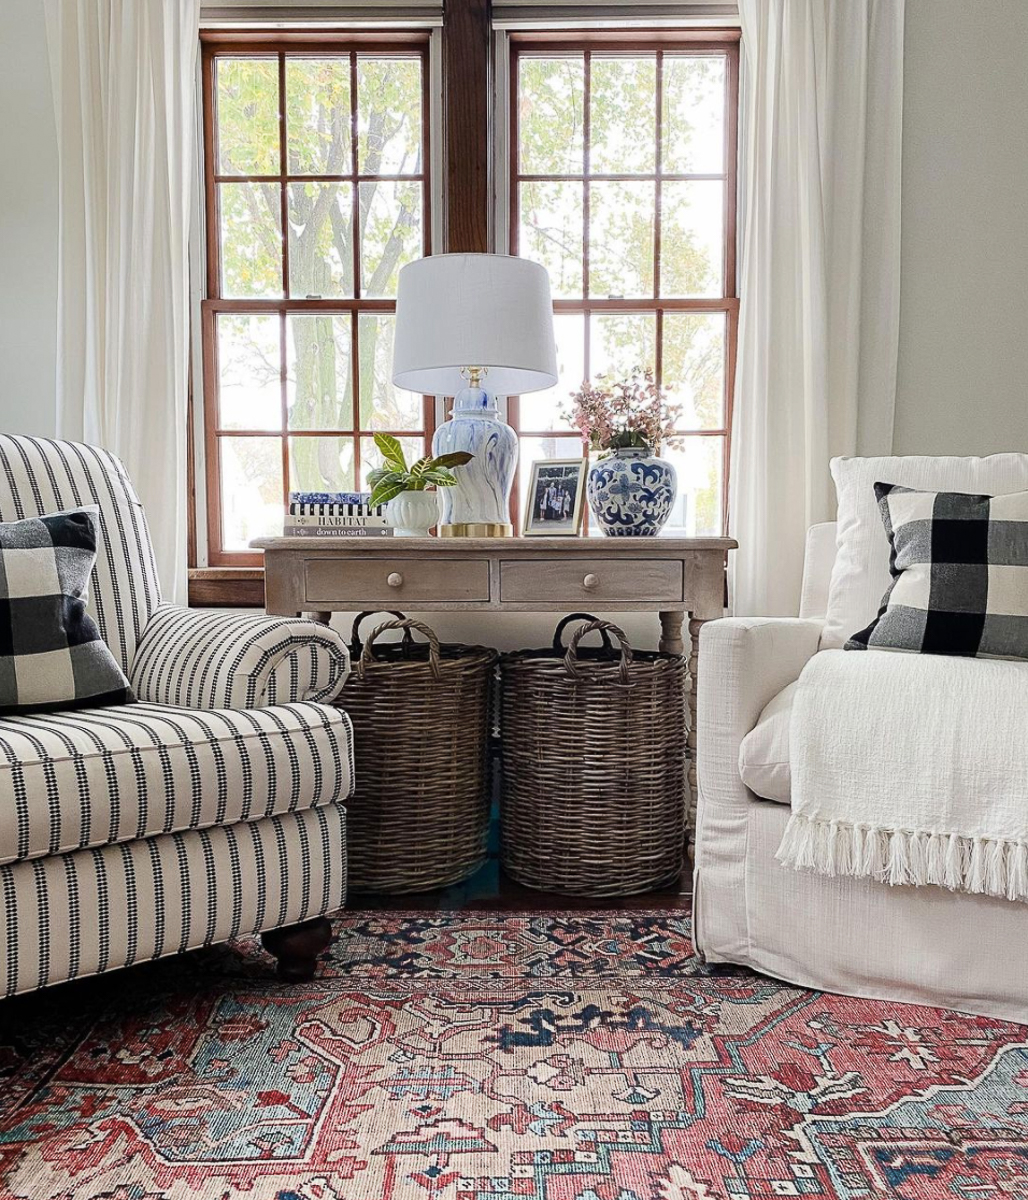 Create a cozy seating area with a pair of mismatched club chairs kellyelko.com